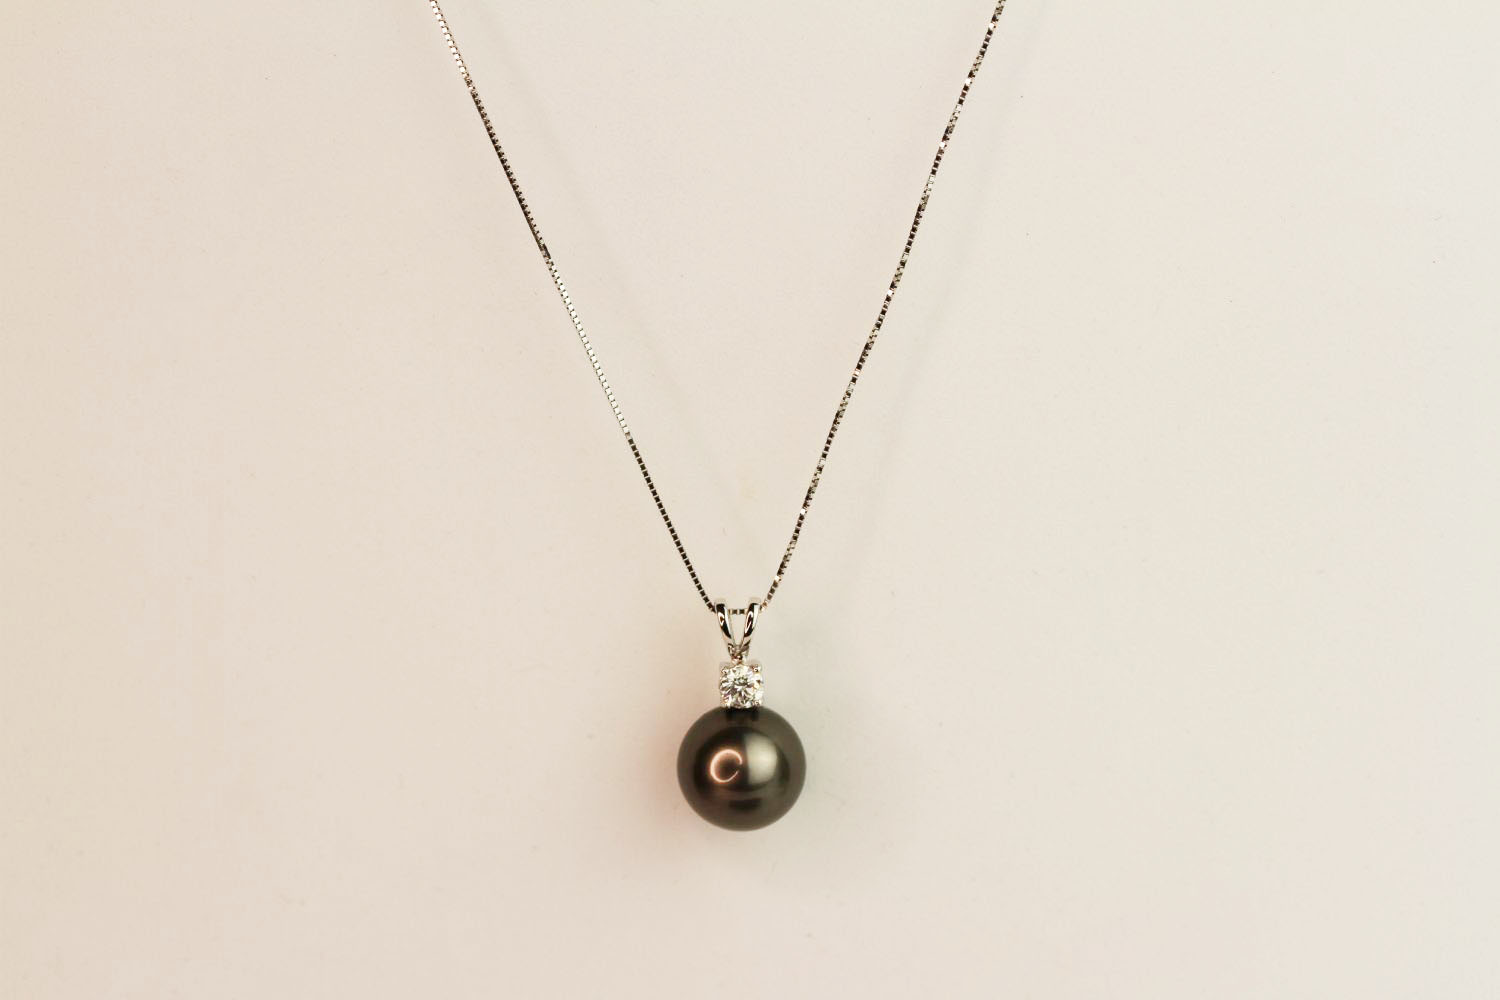 9ct white gold Tahitian black pearl pendant with diamond bale on a 10ct white gold chain, boxed.